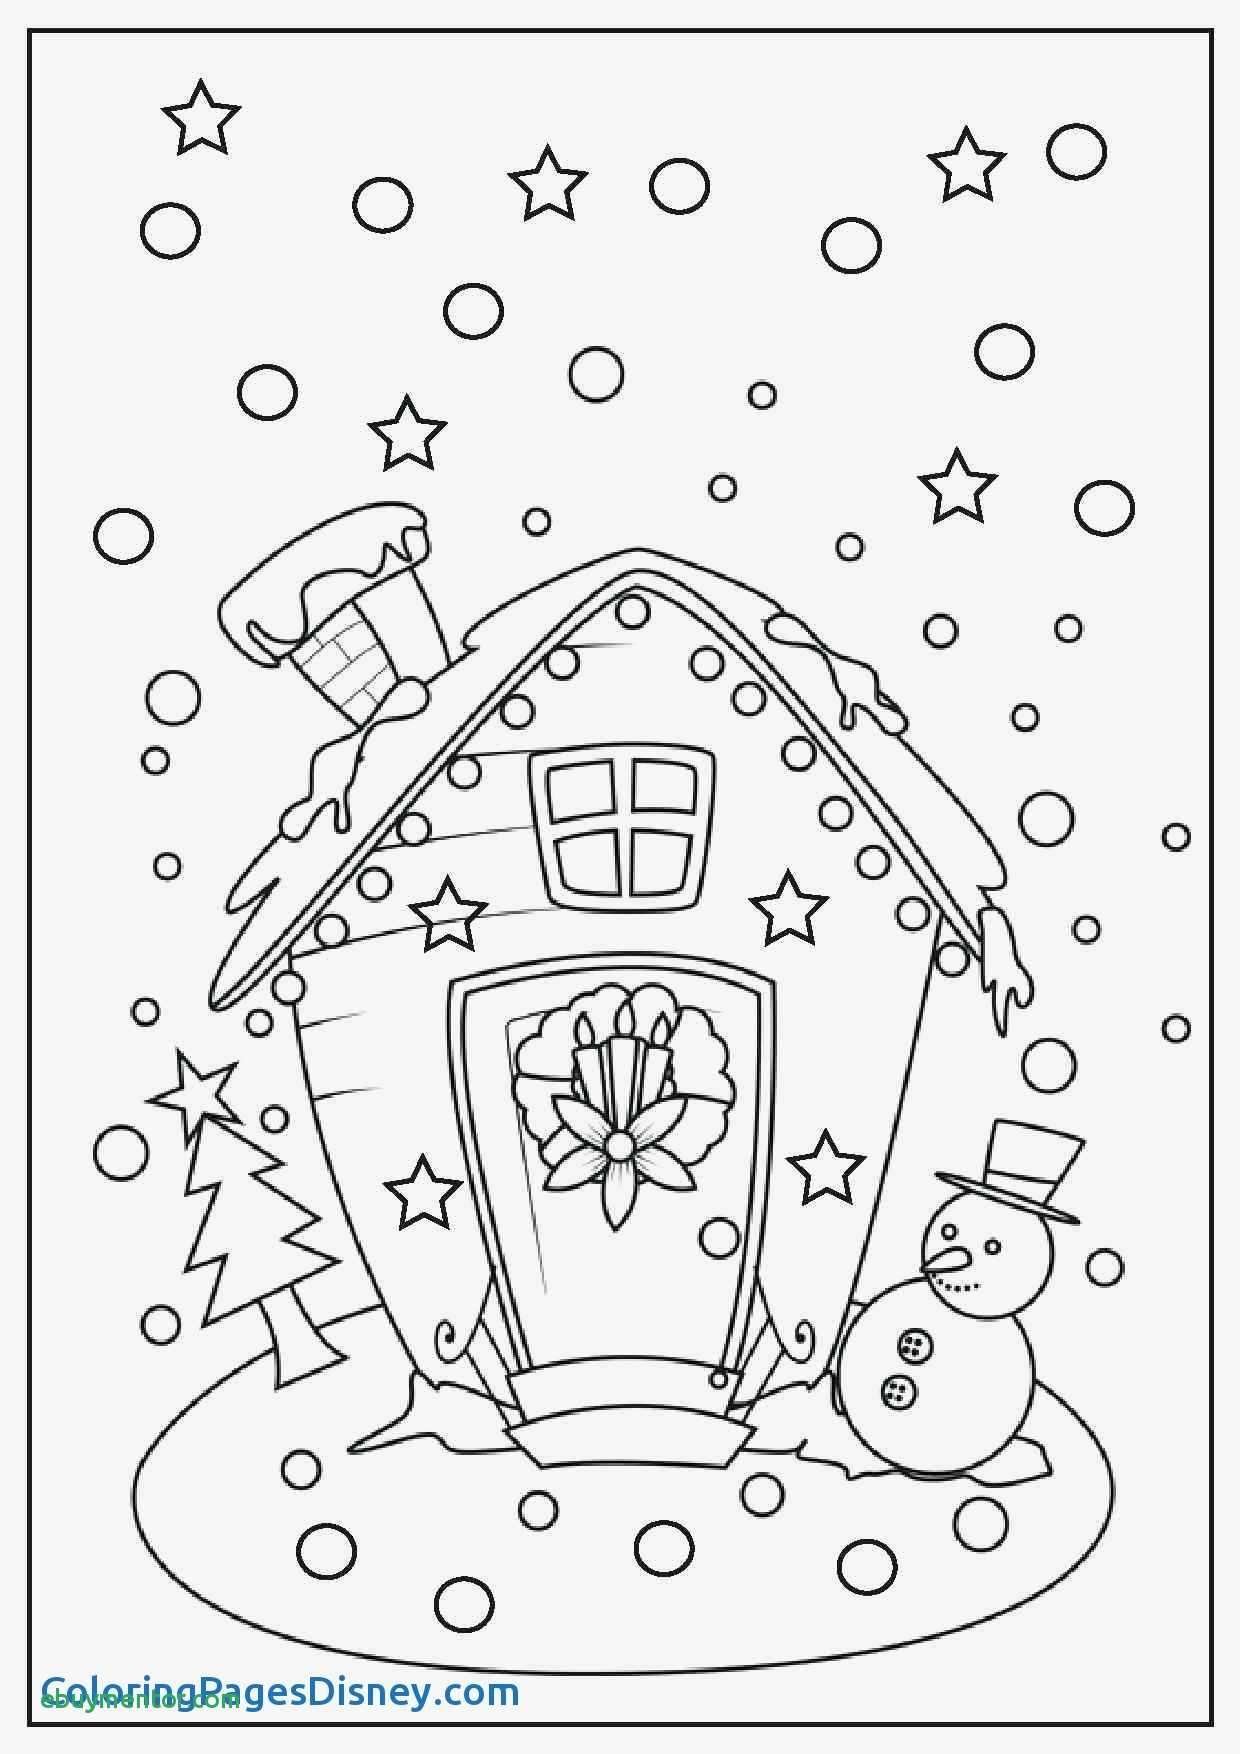 library coloring pages Collection-Library Mouse Coloring Page Christmas Mouse Coloring Pages Printable Cool Coloring Printables 0d 18-s